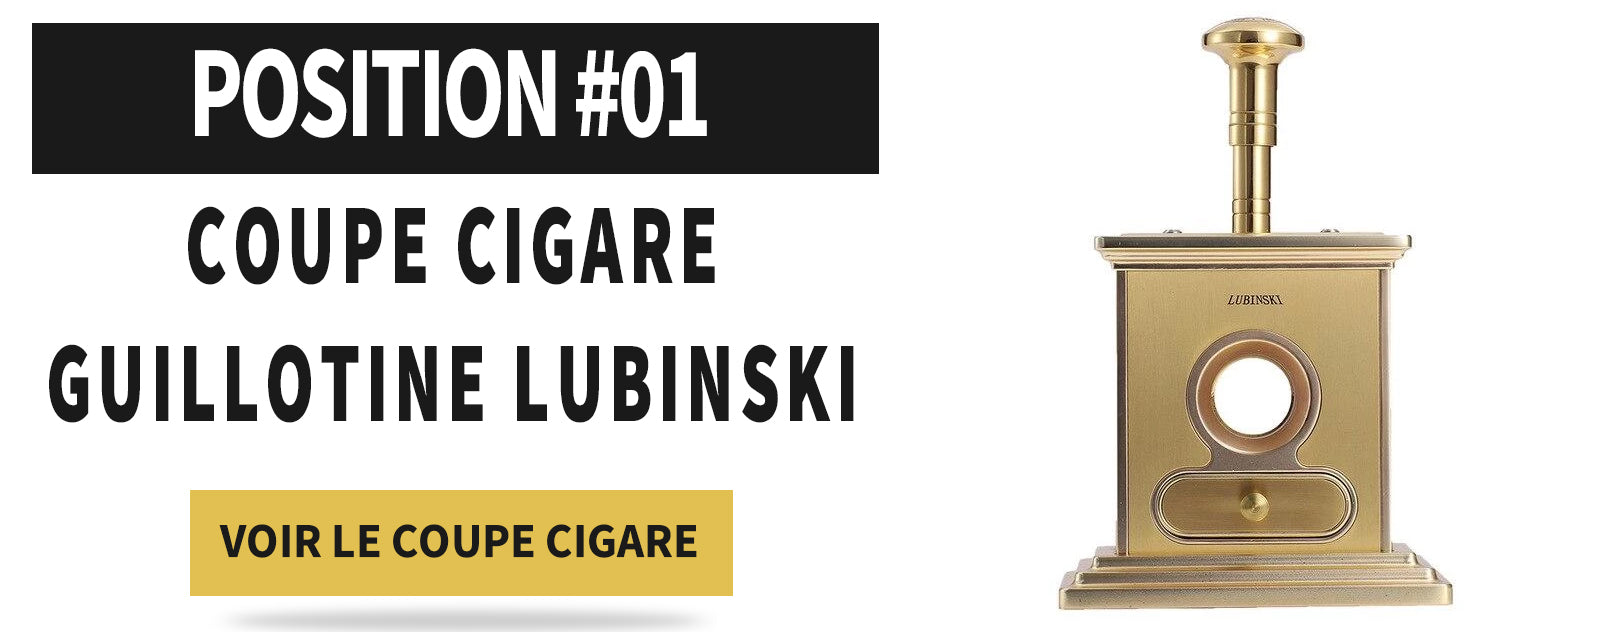 Coupe cigare guillotine de bureau